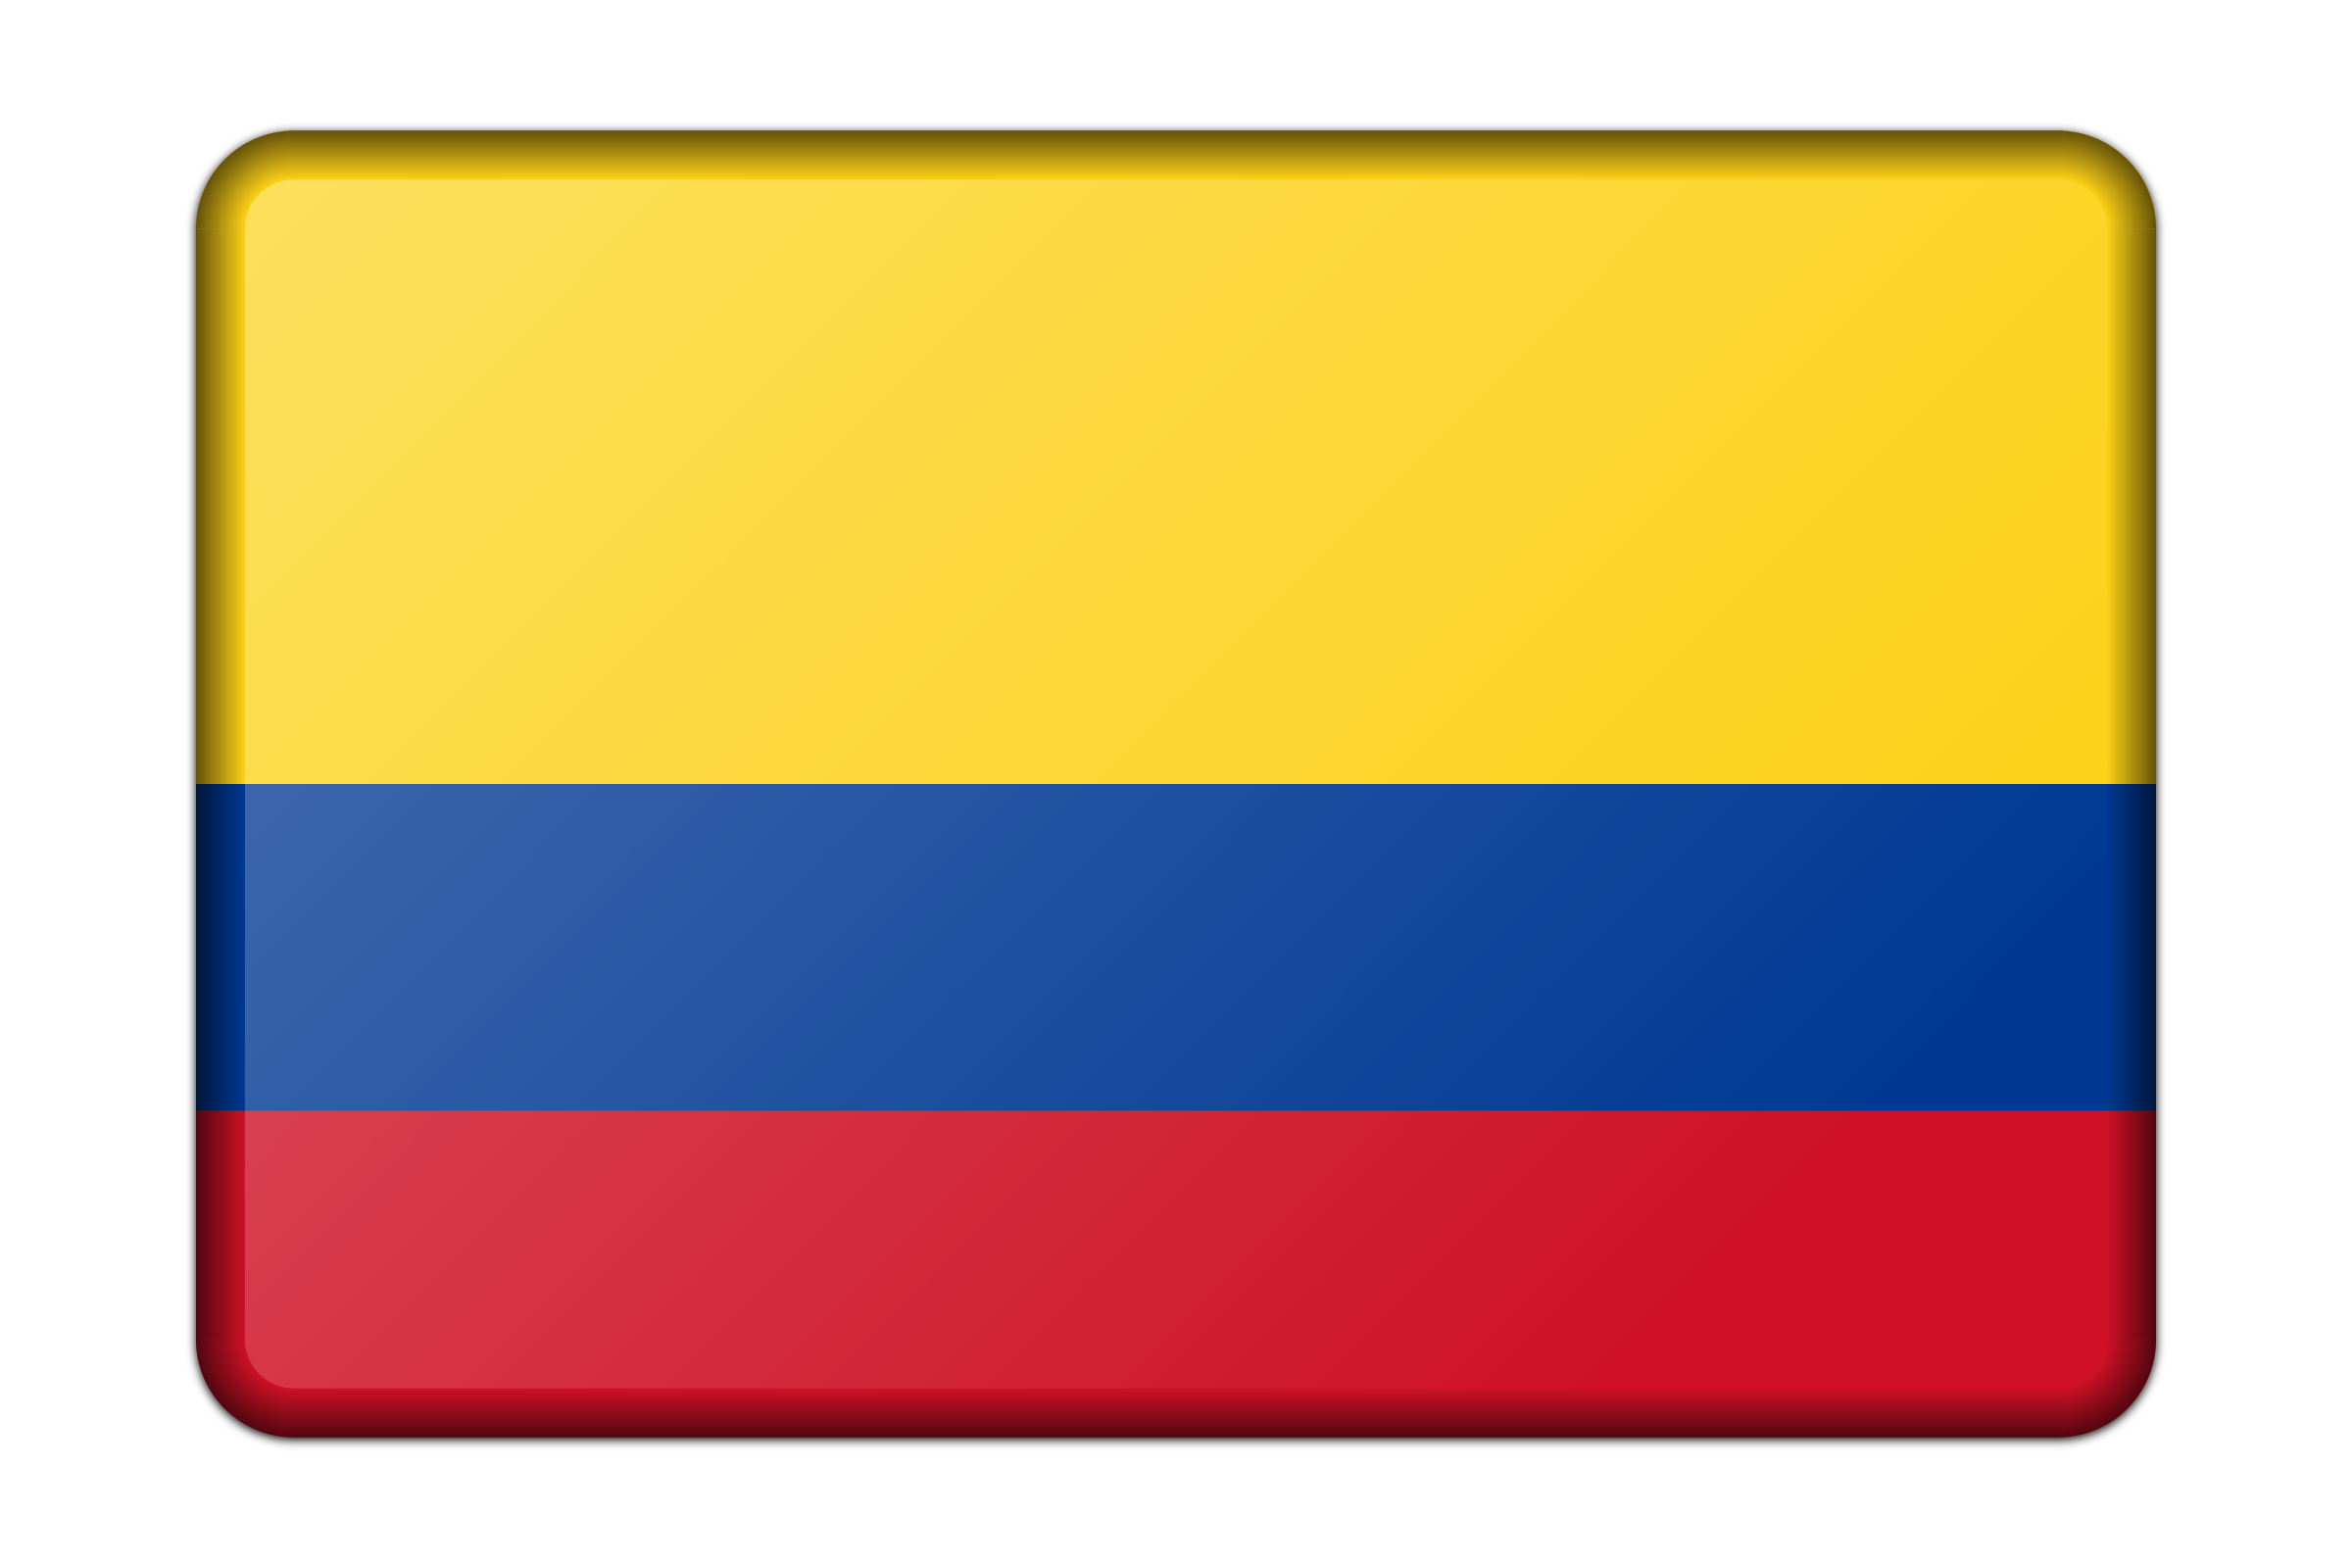 Colombia flag (bevelled) by Firkin